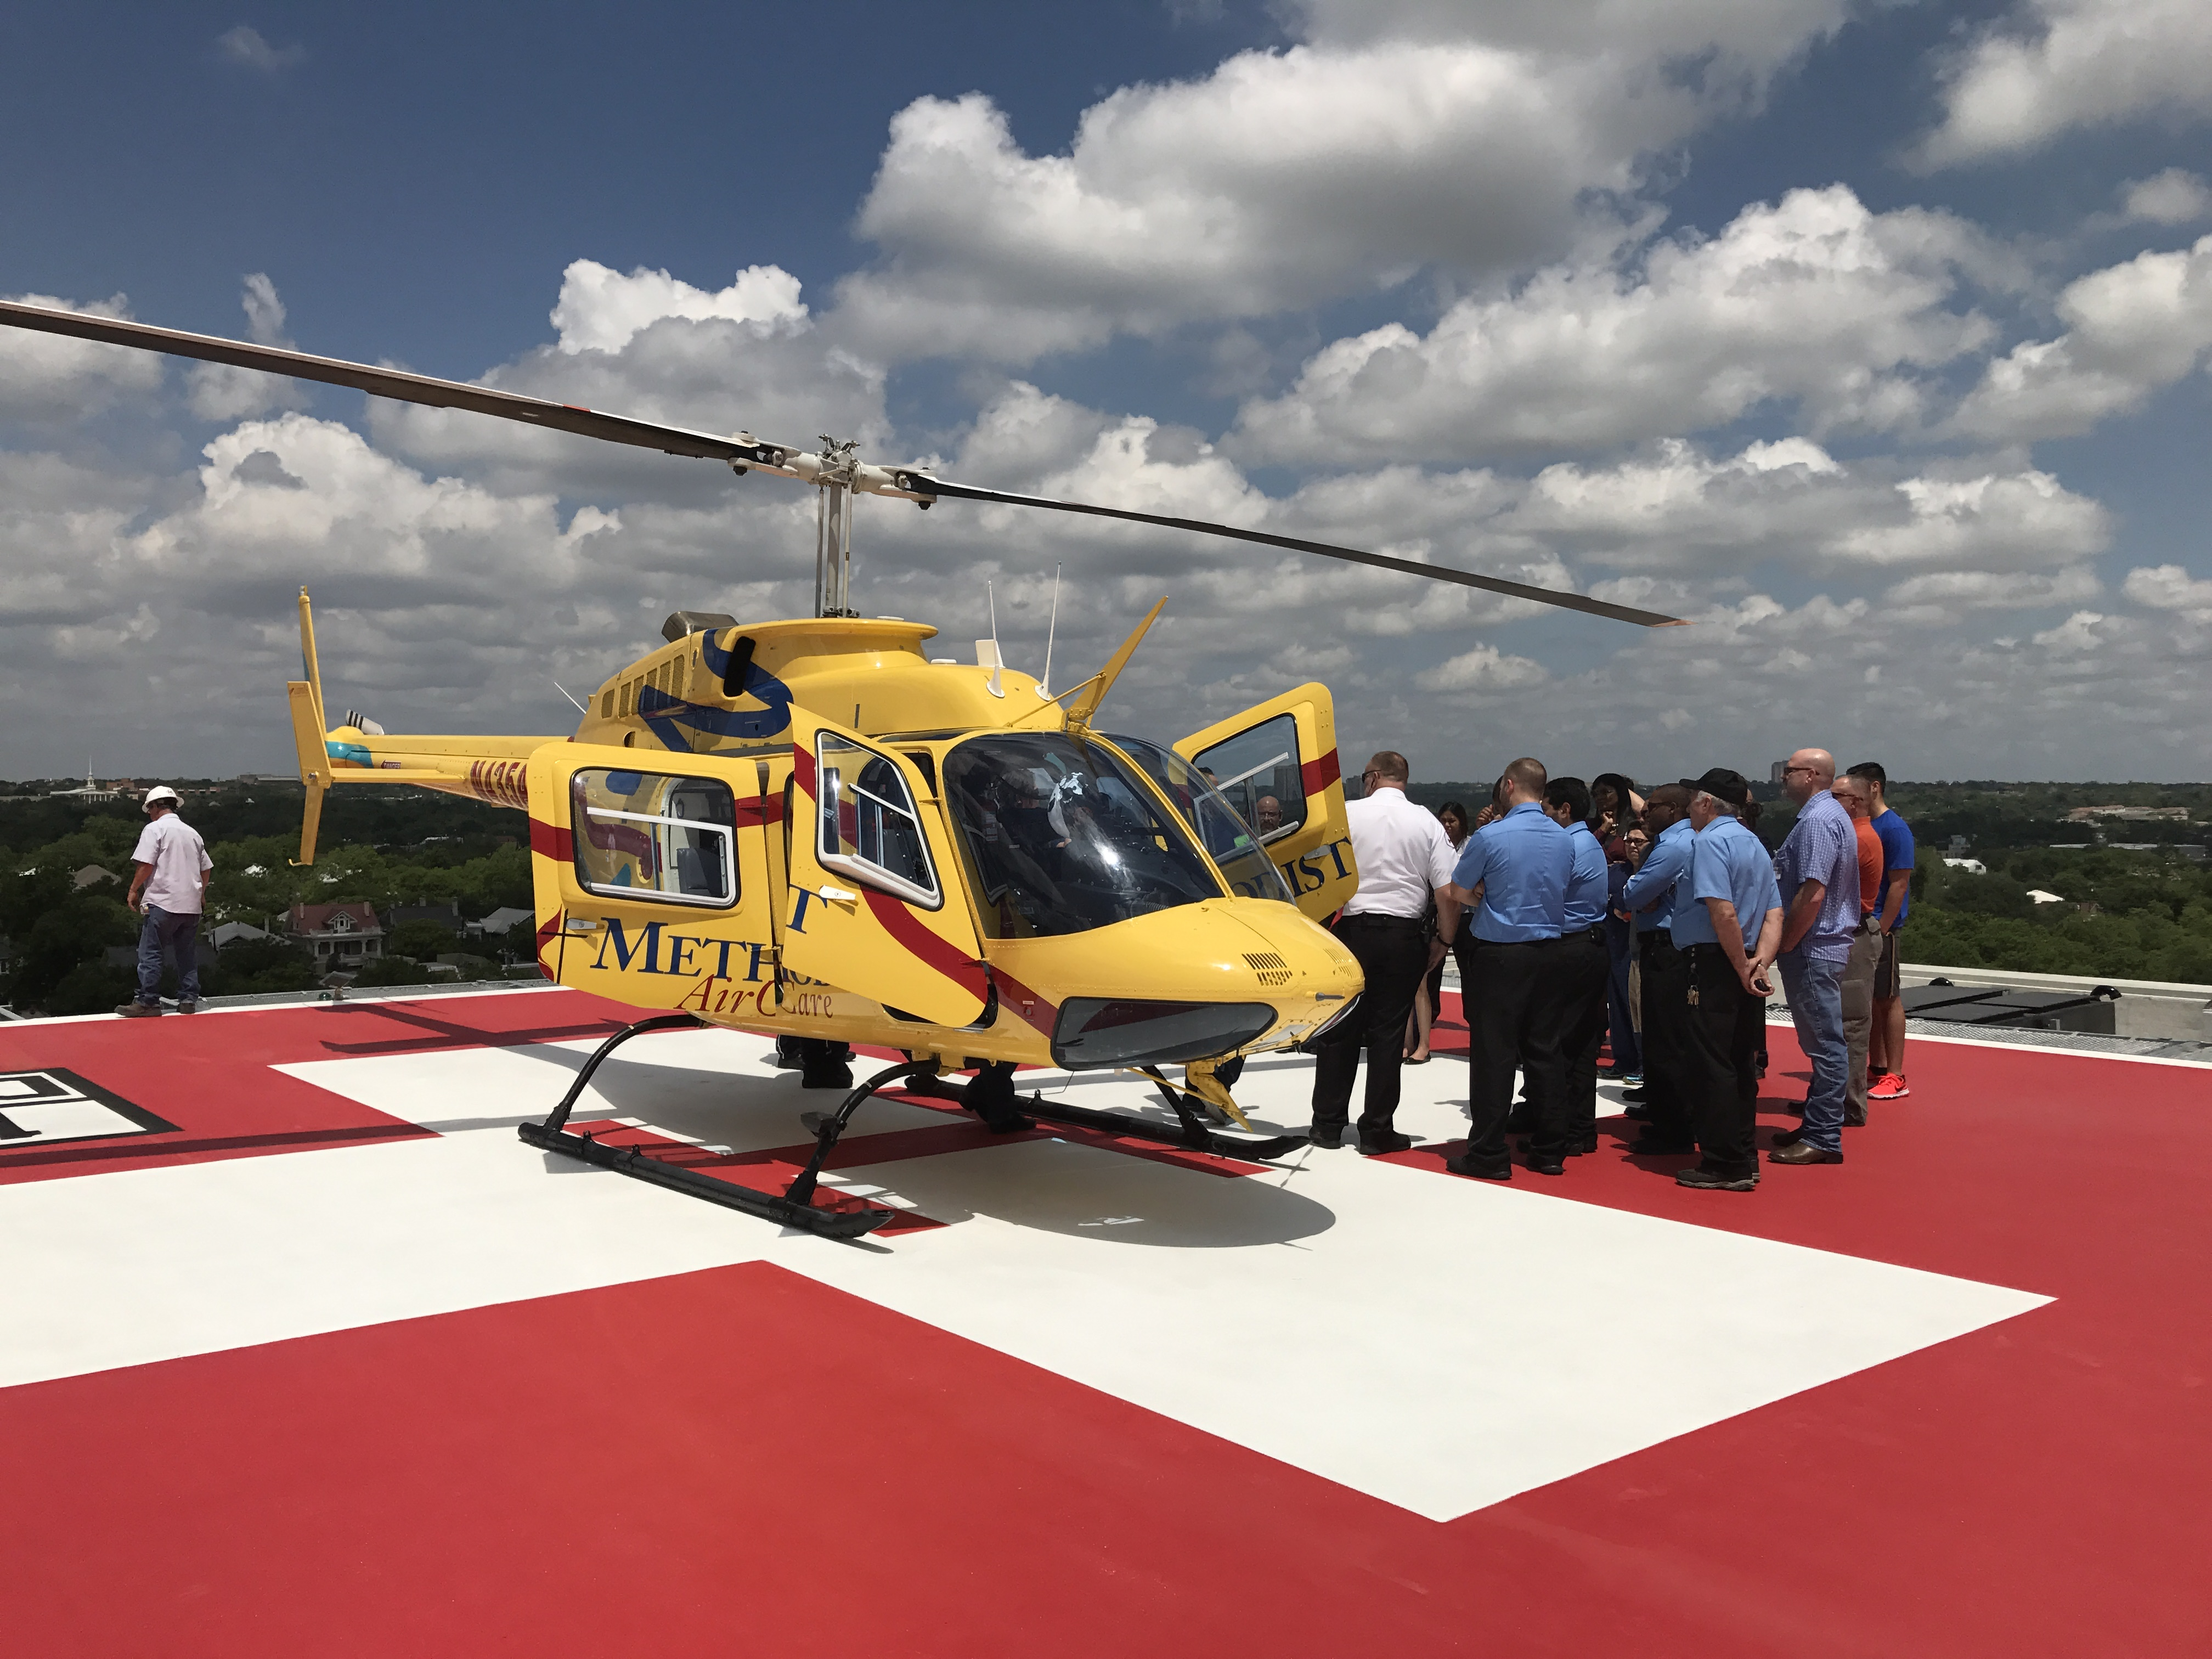 Emergency Services Helipad Metropolitan Methodist Hospital